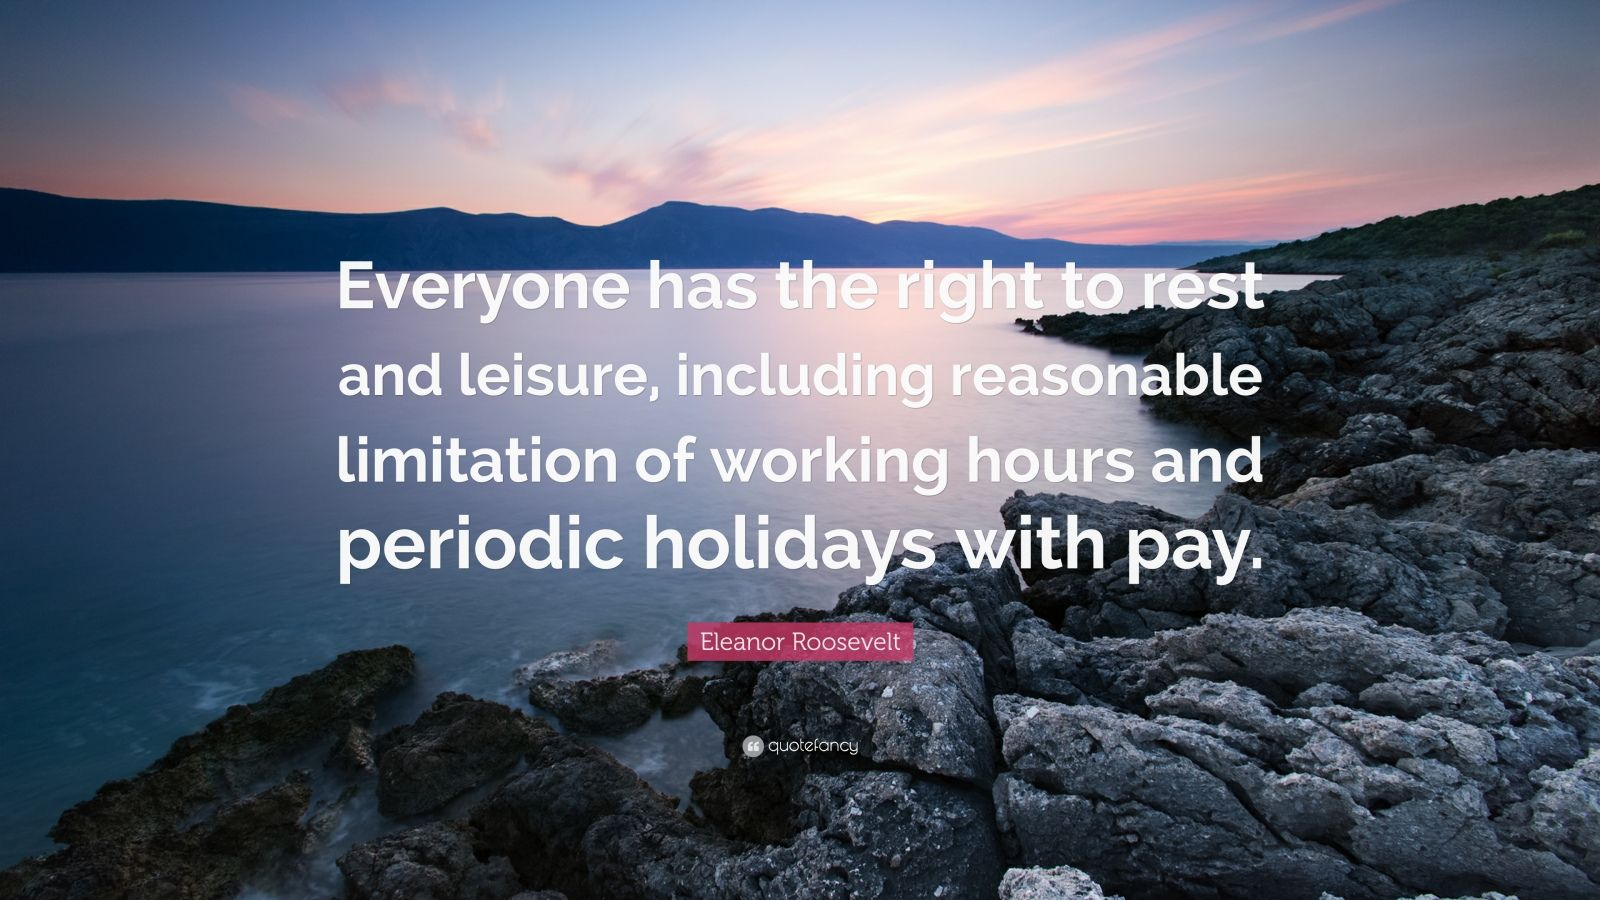 """Eleanor Roosevelt Quote: """"Everyone has the right to rest and leisure, including reasonable limitation of working hours and periodic holidays with pay."""""""